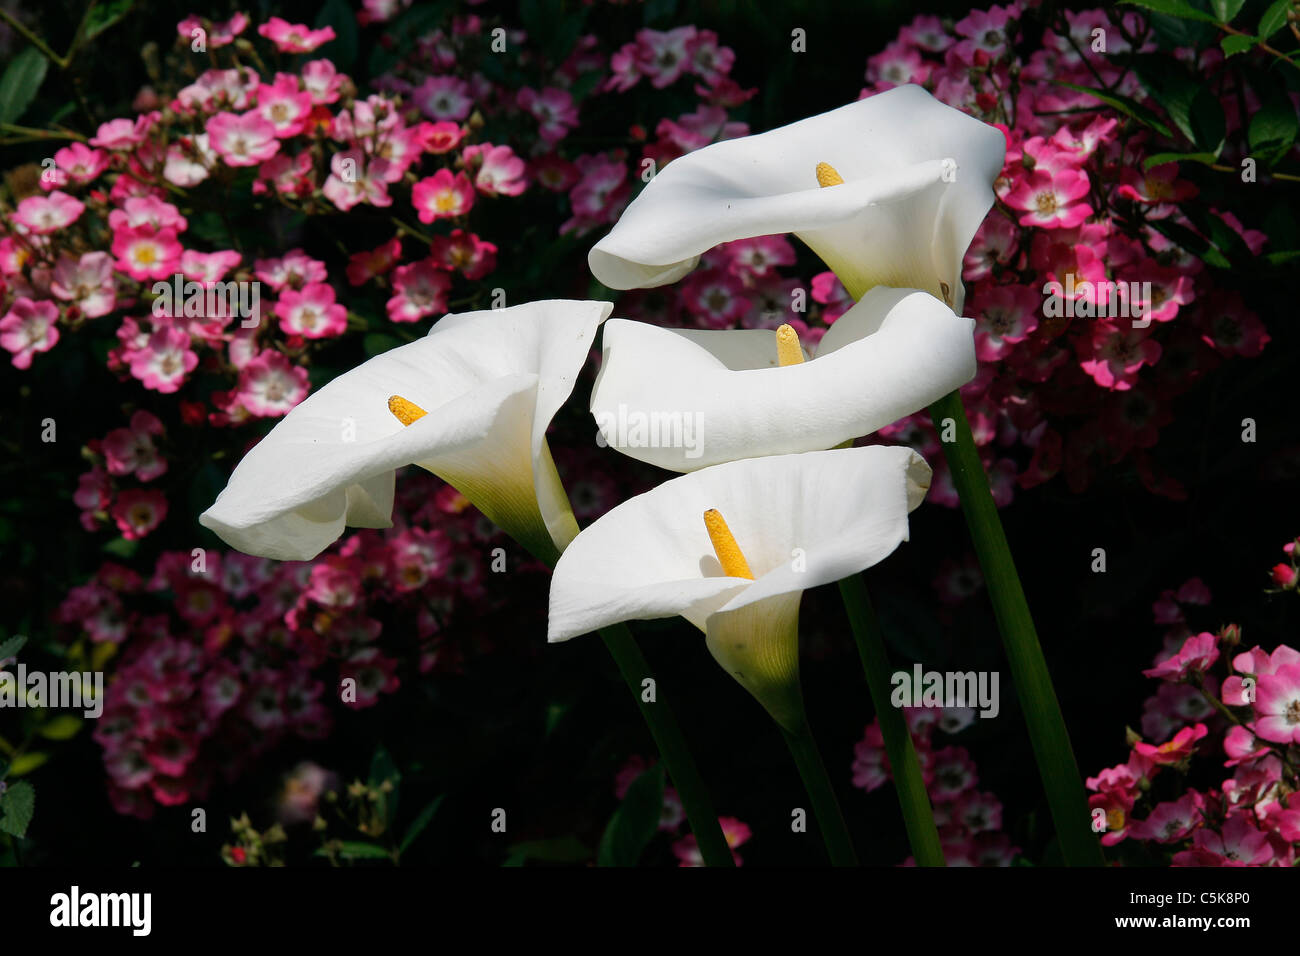 Arum in bloom. - Stock Image